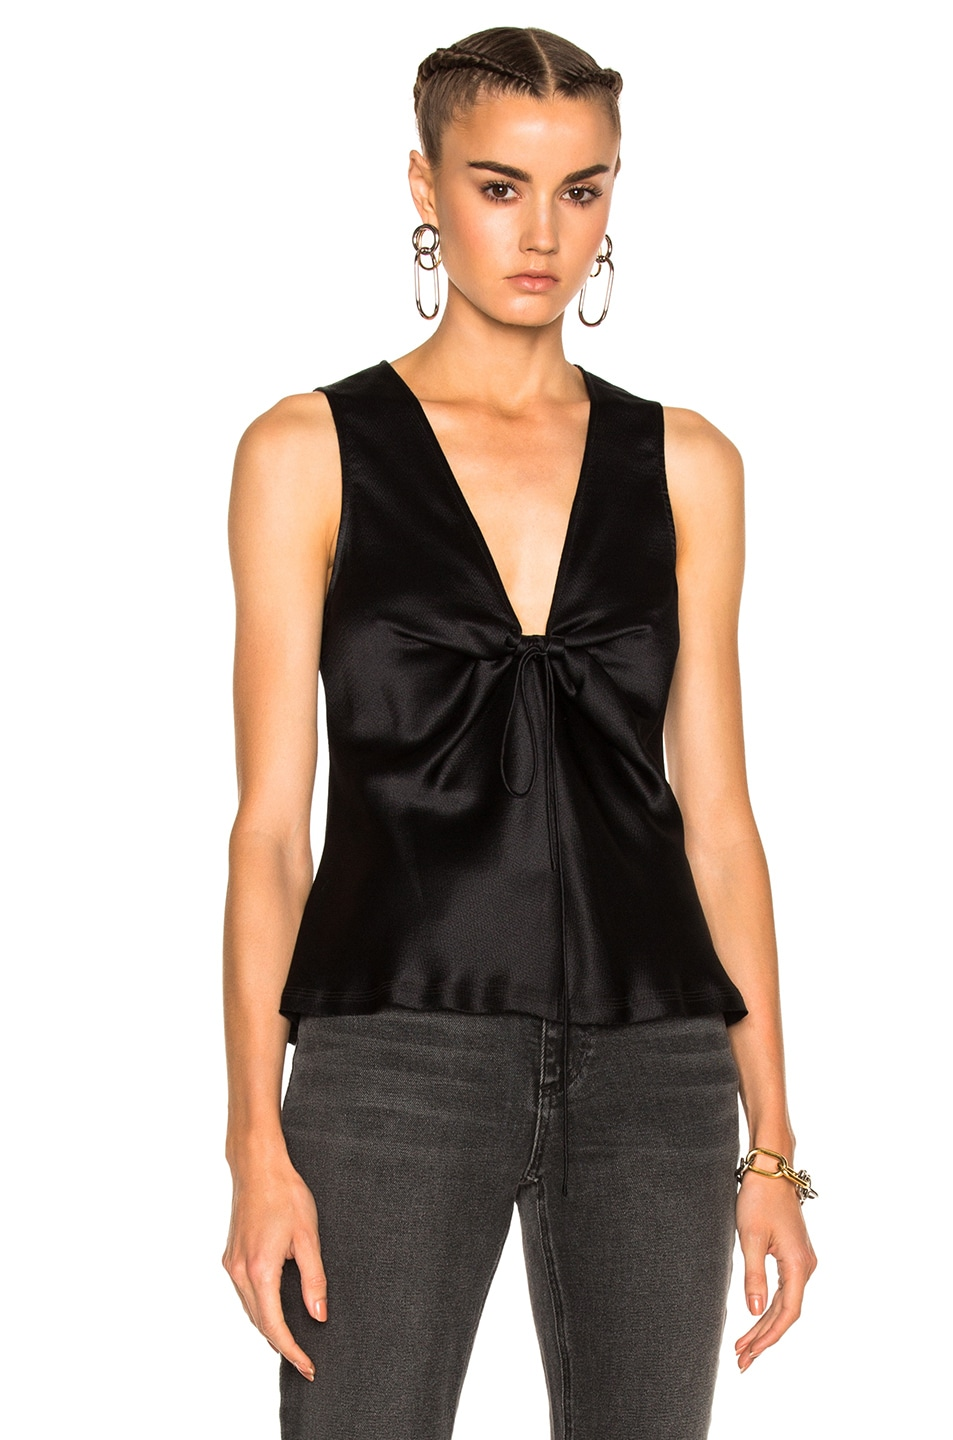 Image 1 of T by Alexander Wang Silk Charmeuse Tie Knot Sleeveless Top in Black